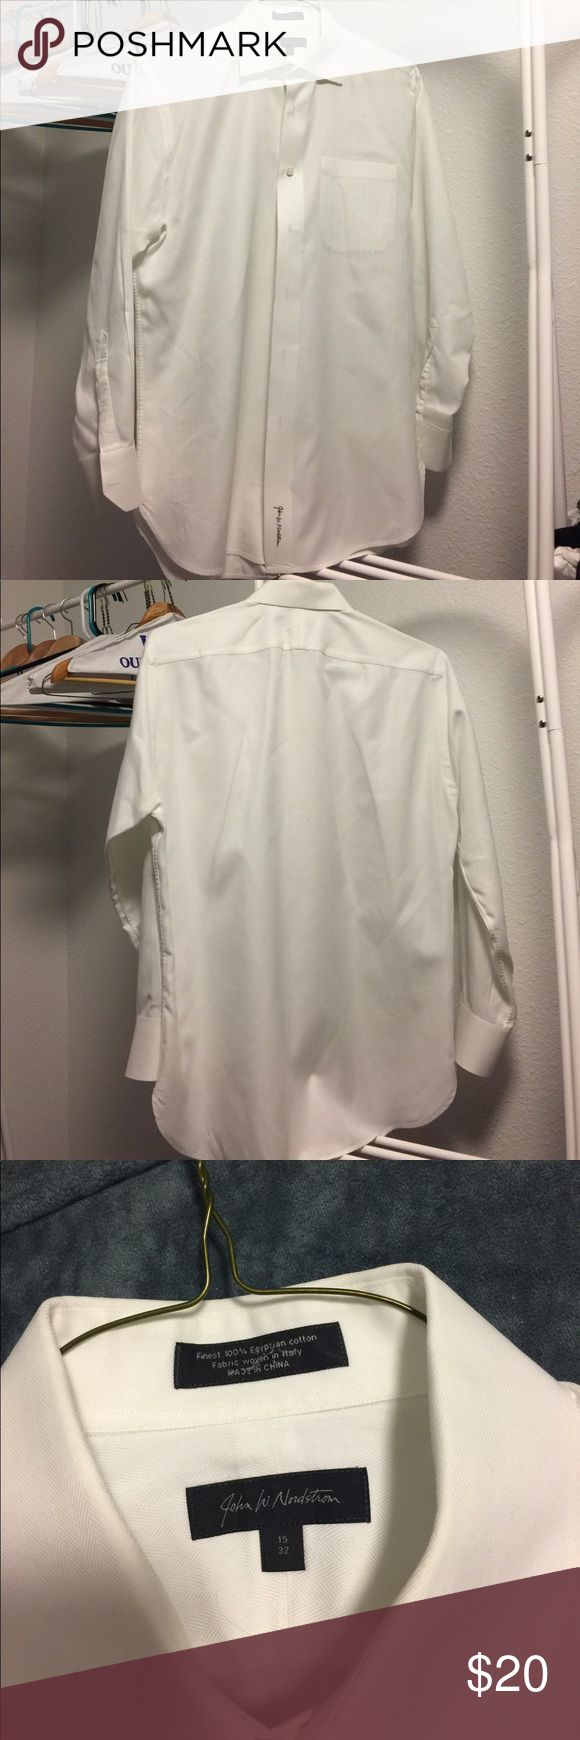 John W Nordstrom Mens white dress shirt size 15 32 Men's John W Nordstrom white dress shirt. Tag reads size 15, 32. Very crisp and in good condition. Will do my best to package it so it stays crisp. I ship from a smoke-free home. John W. Nordstrom Shirts Dress Shirts